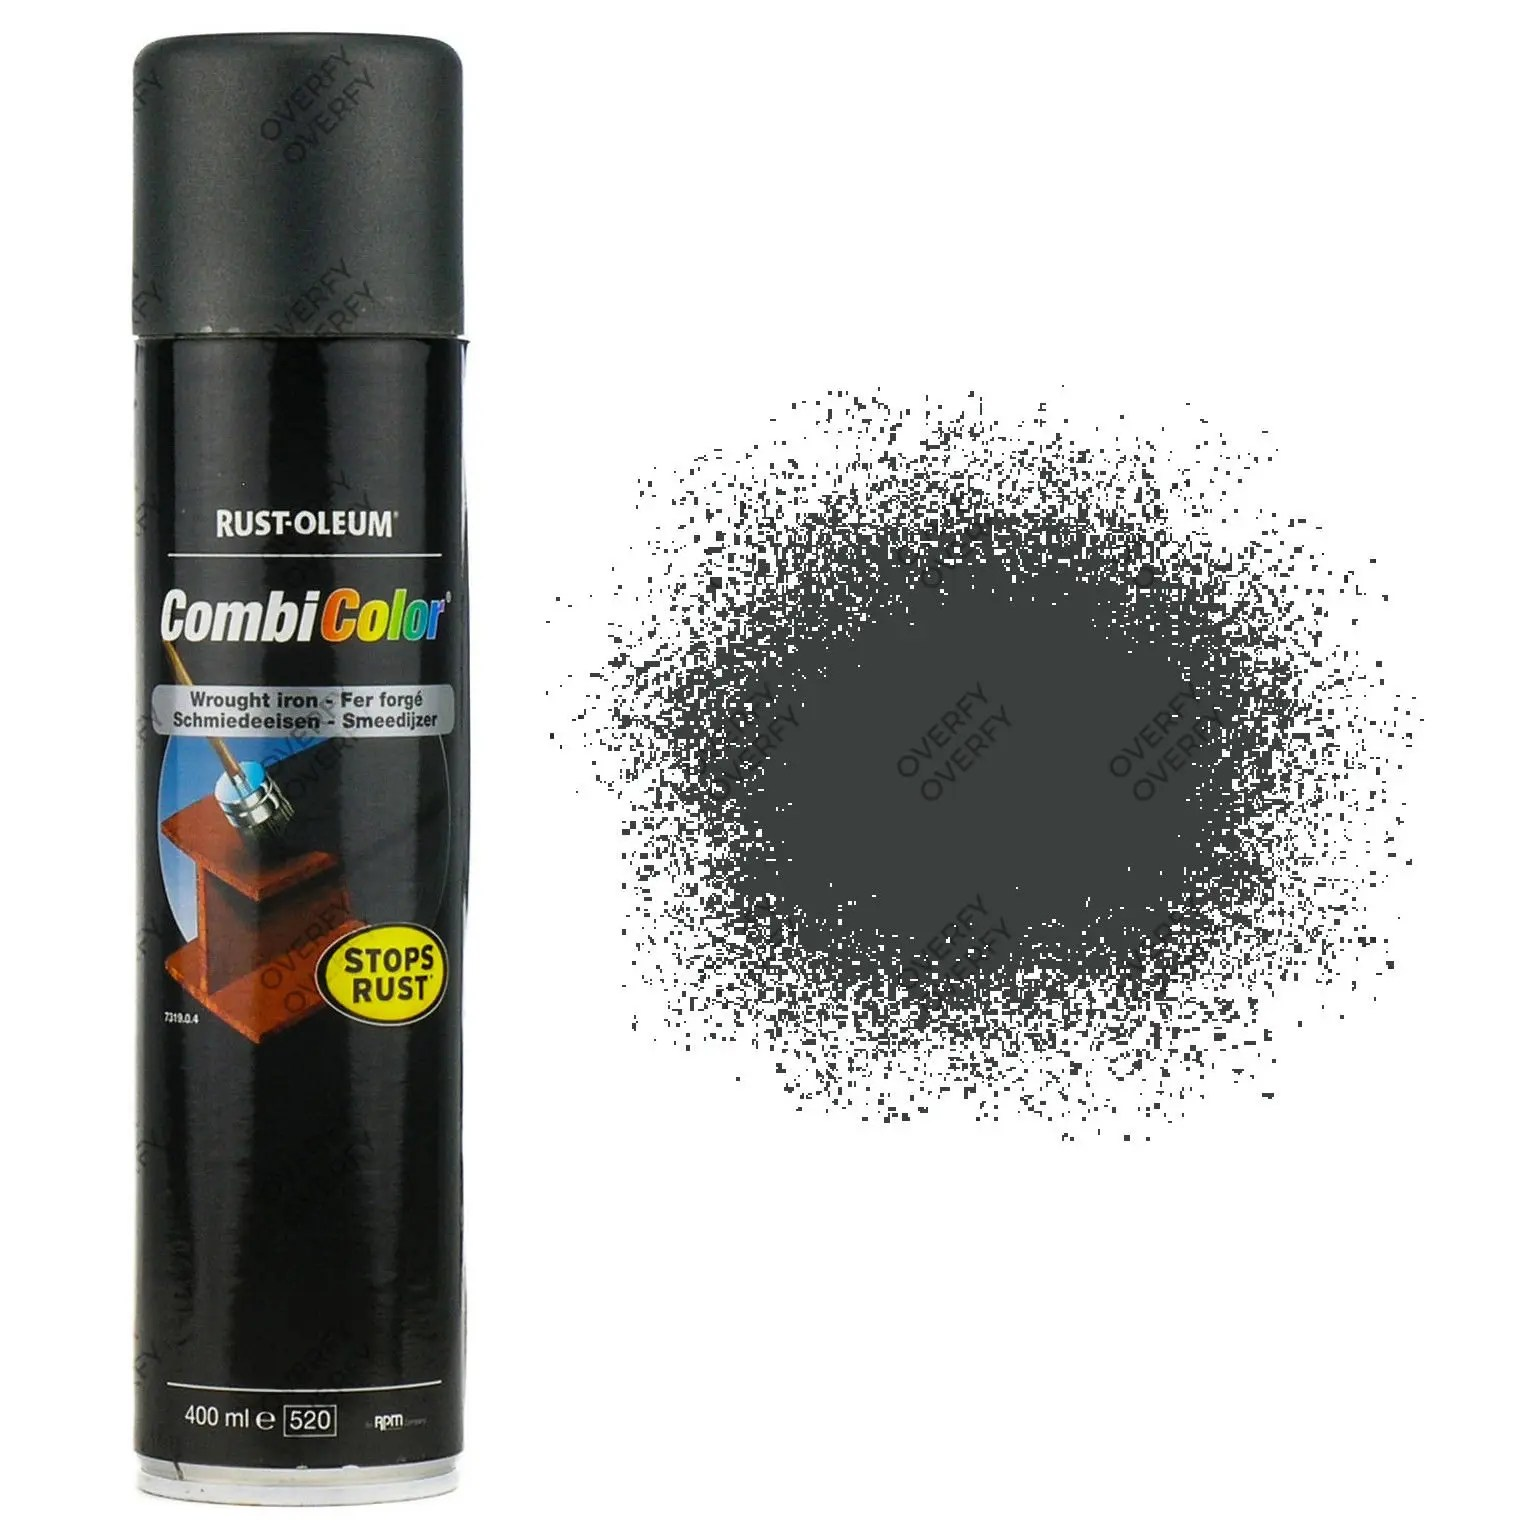 Direct To Rust Gloss Wrought Iron Black Spray Paint Rust Oleum Combicolor Ral9005